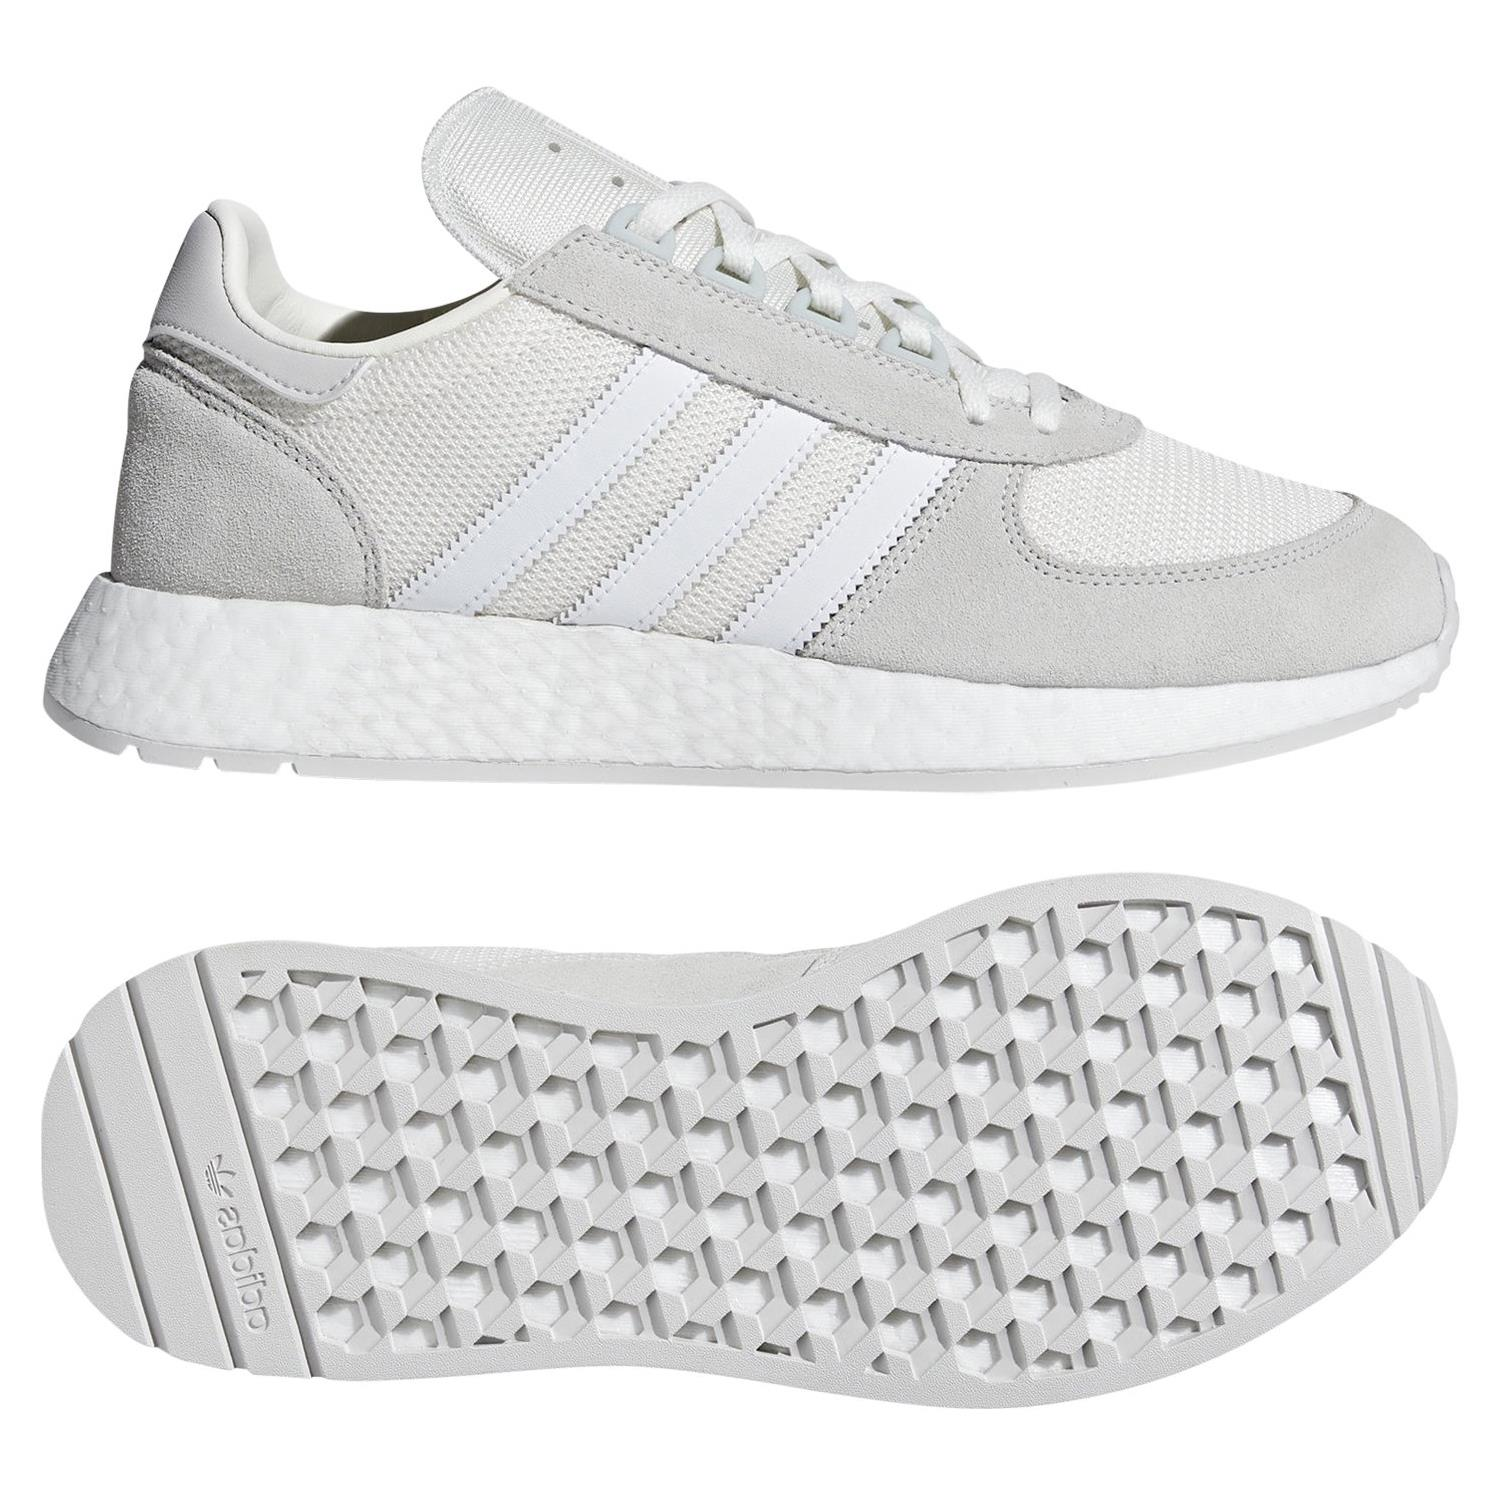 check out cd4fb 06ca4 Details about adidas ORIGINALS MARATHON X 5923 TRAINERS WHITE SHOES  SNEAKERS RETRO INIKI MEN S